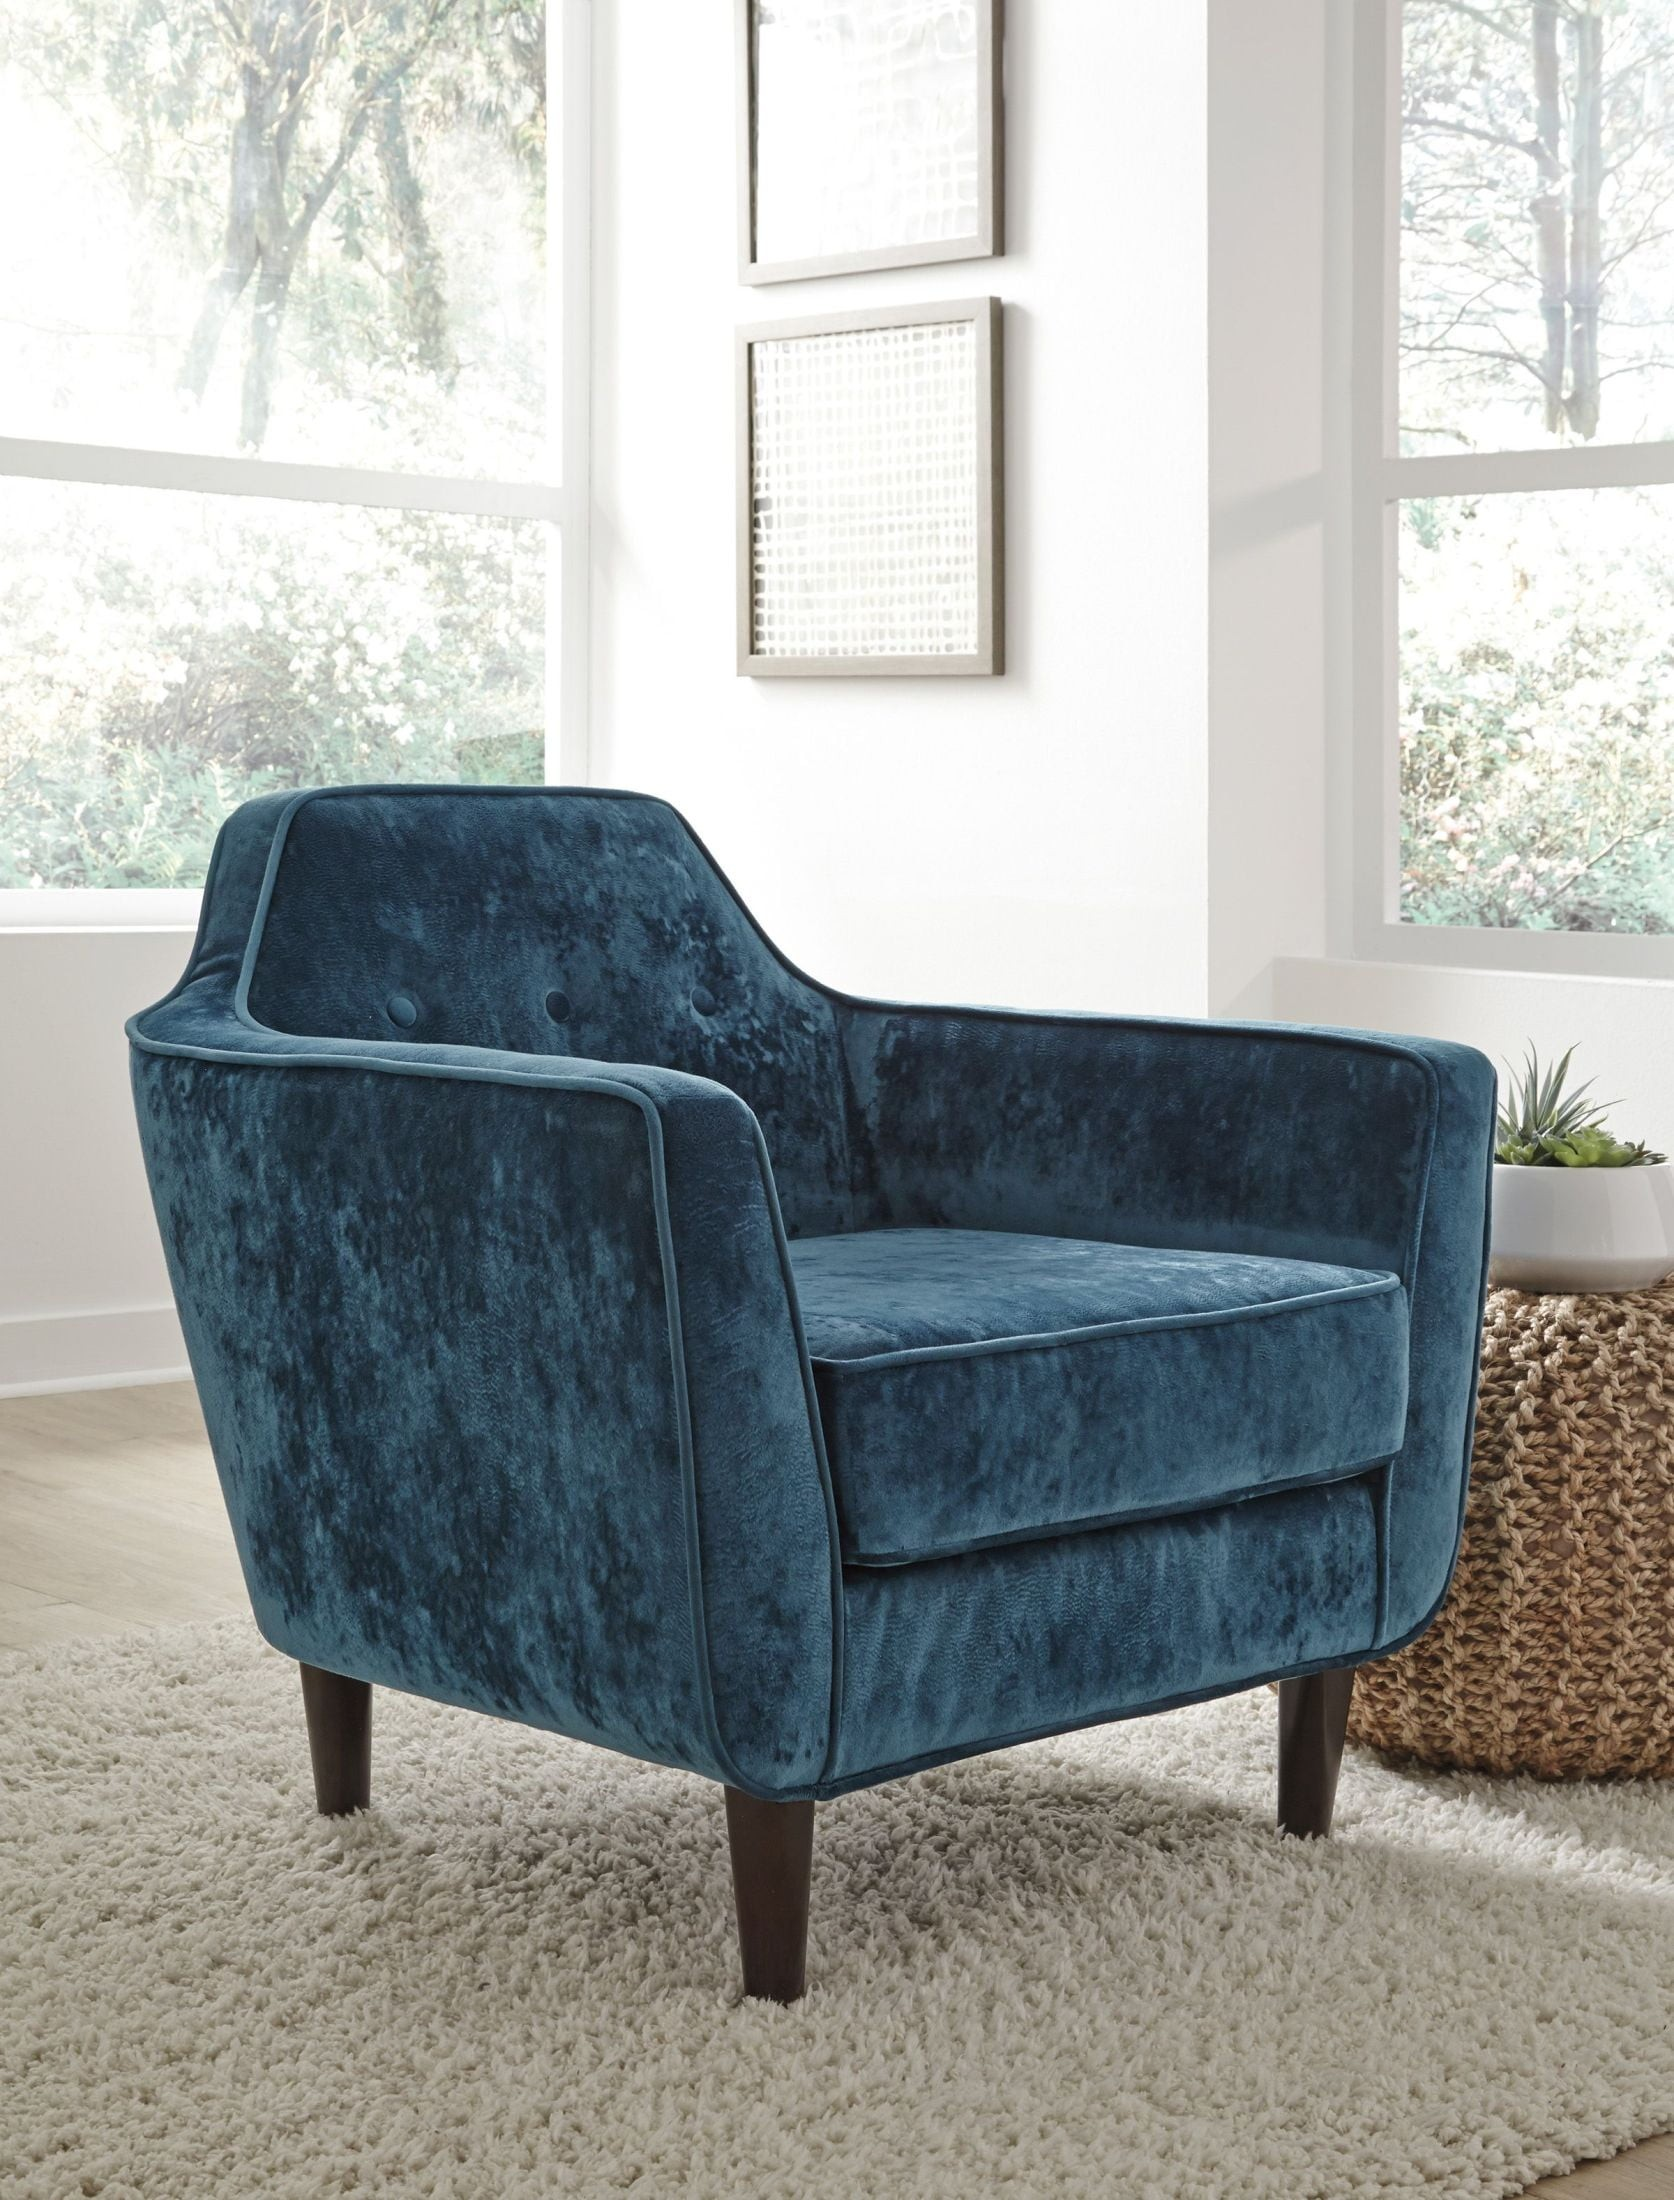 Oxette Green Accent Chair Media Gallery Oxette Green Accent Chair Media  Gallery 1